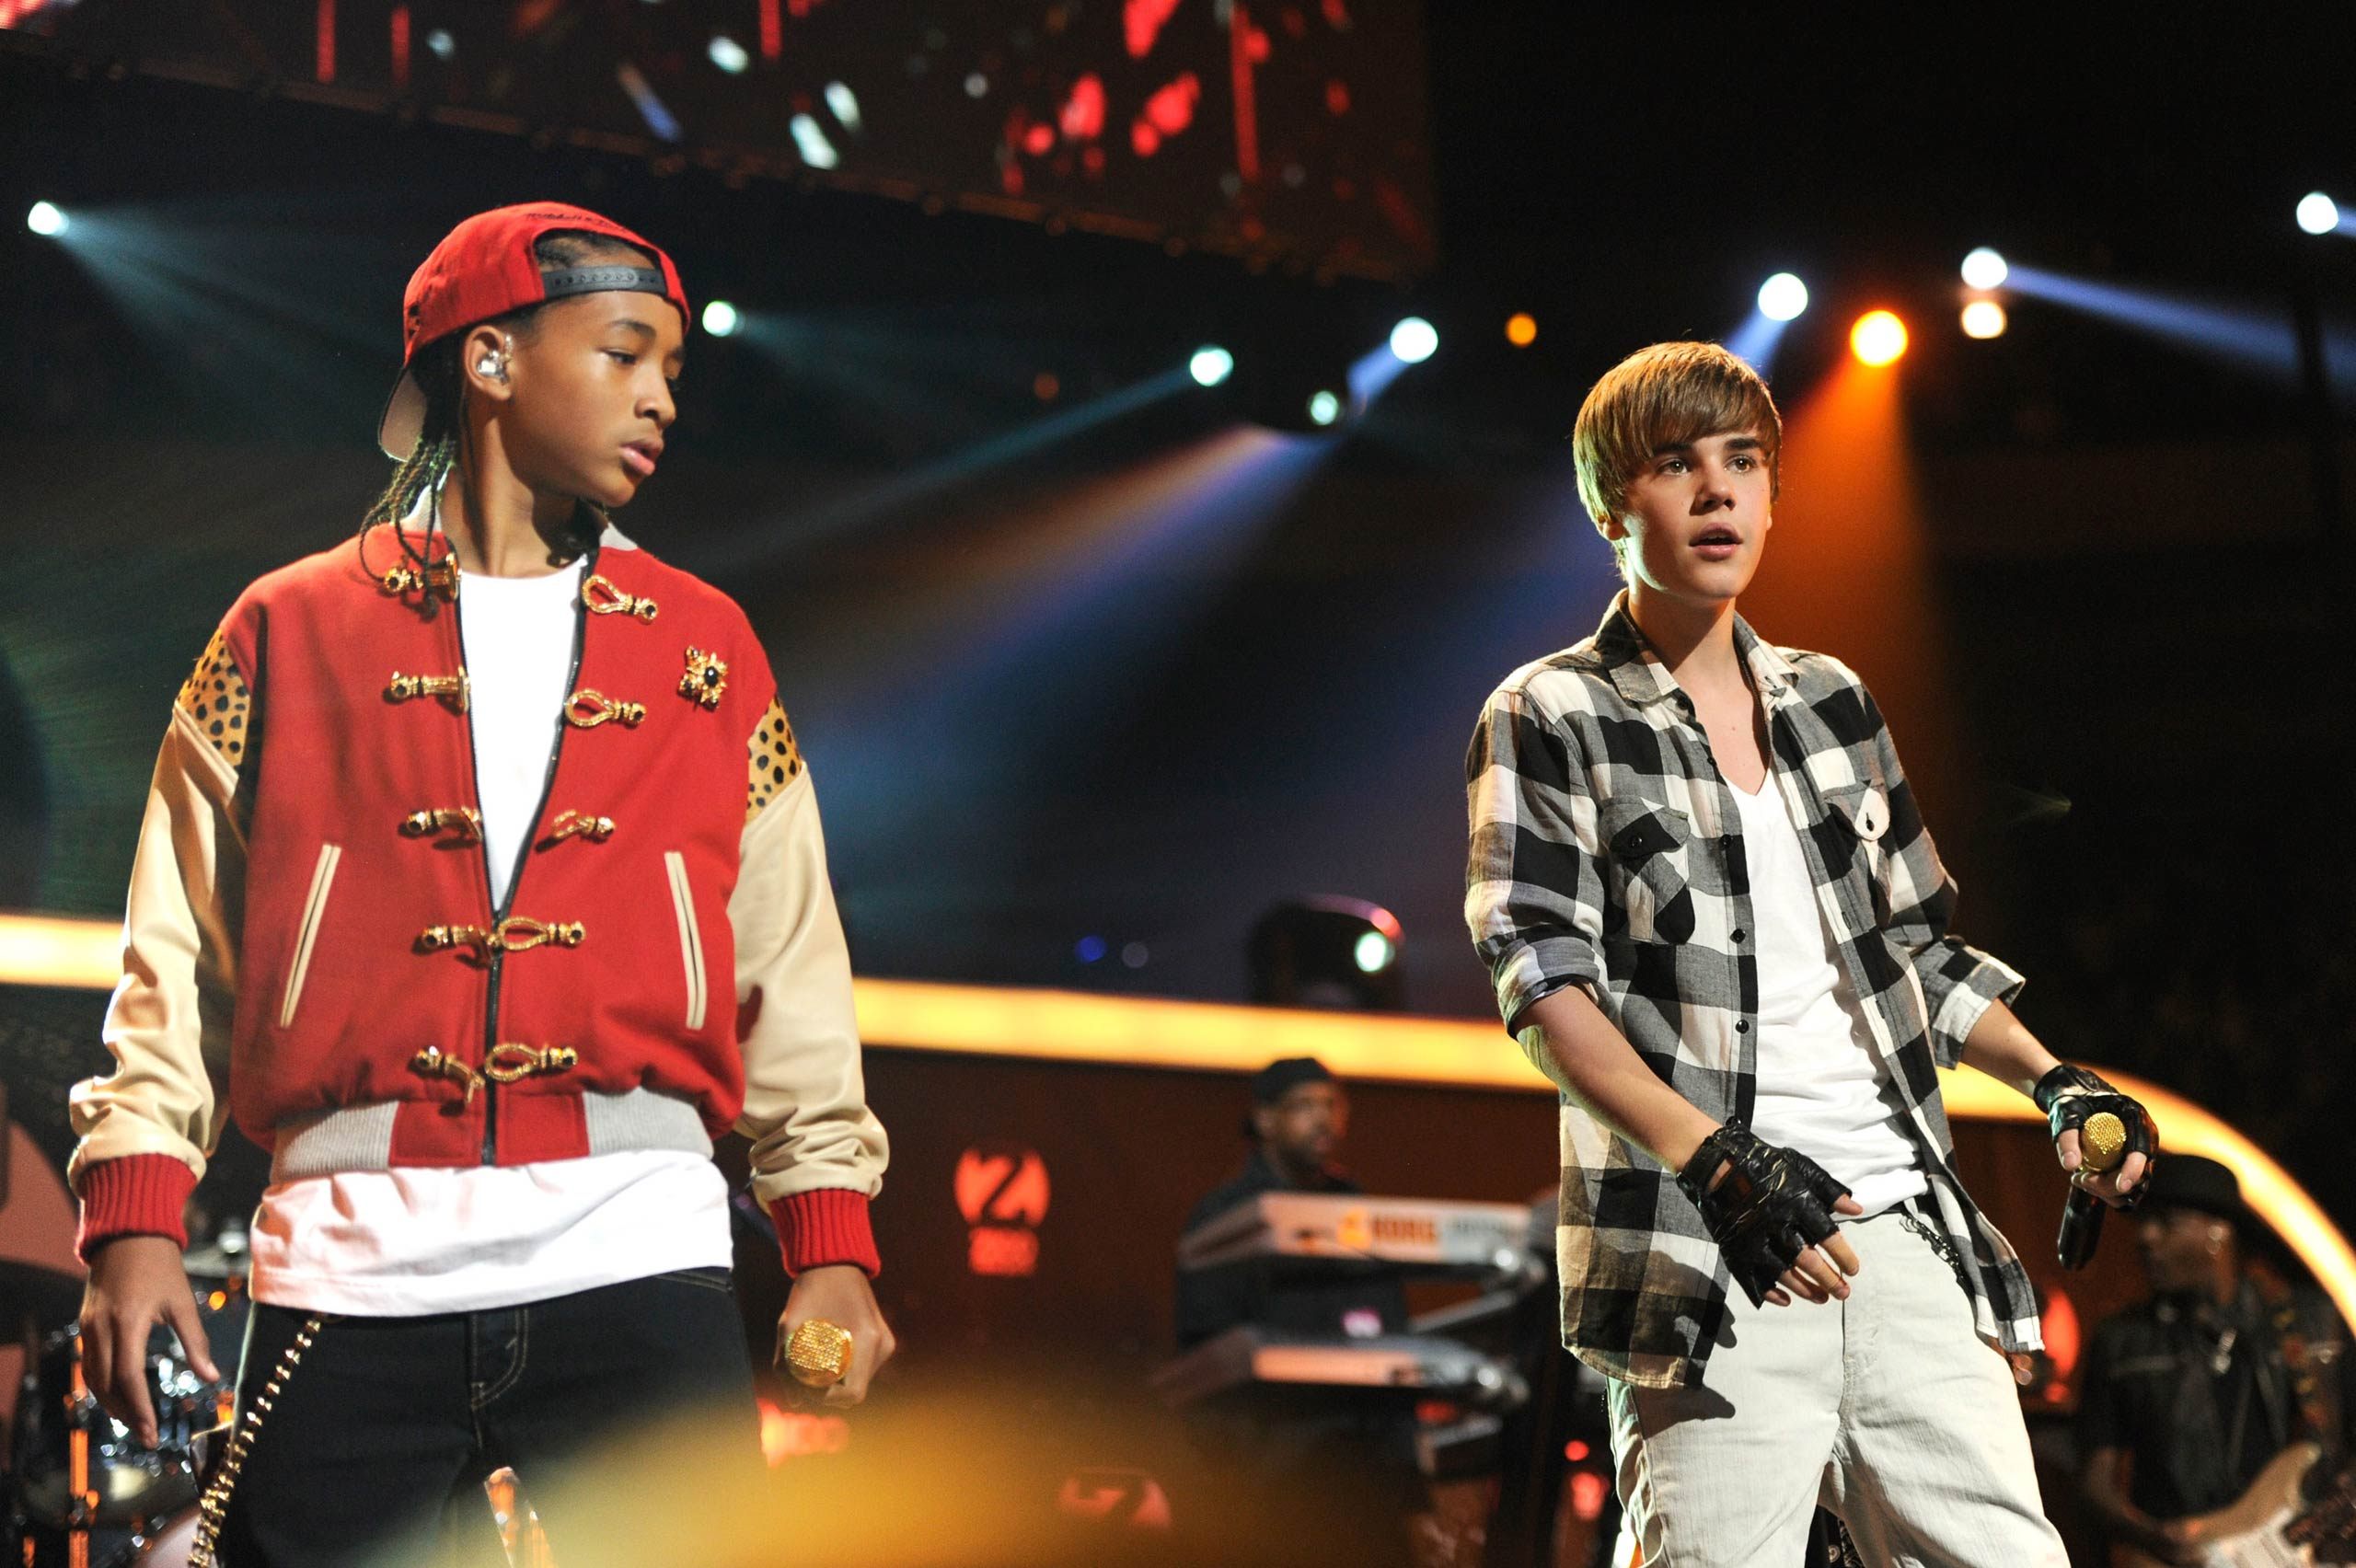 Jaden Smith and Justin Bieber perform onstage during Z100's Jingle Ball 2010 presented by H&M at Madison Square Garden in New York City in 2010.